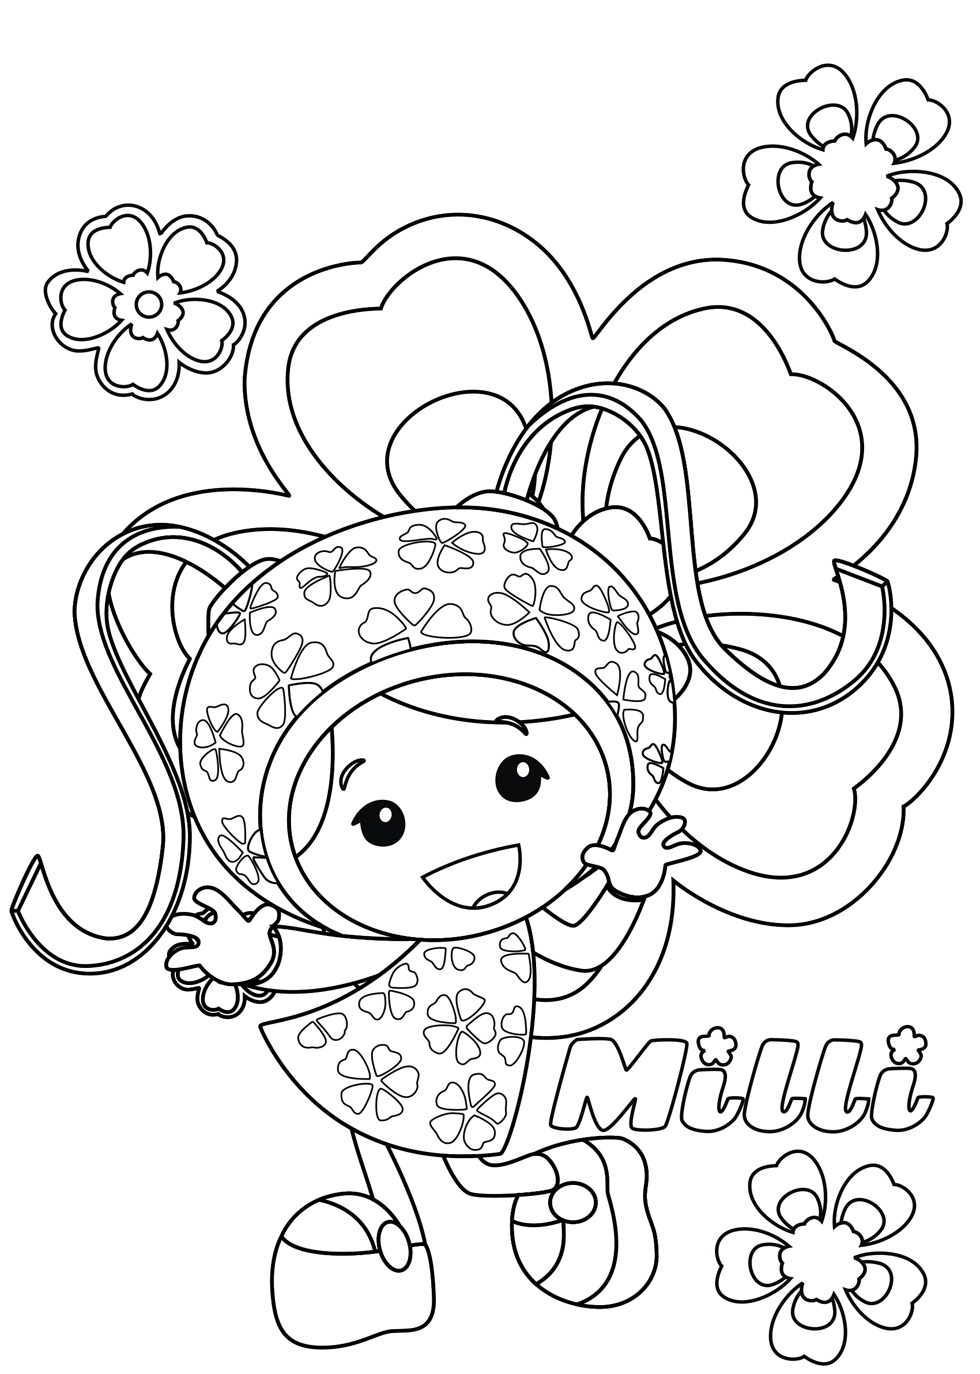 Team Umizoomi Coloring Pages - Free Printable Team Umizoomi Coloring Pages for Kids